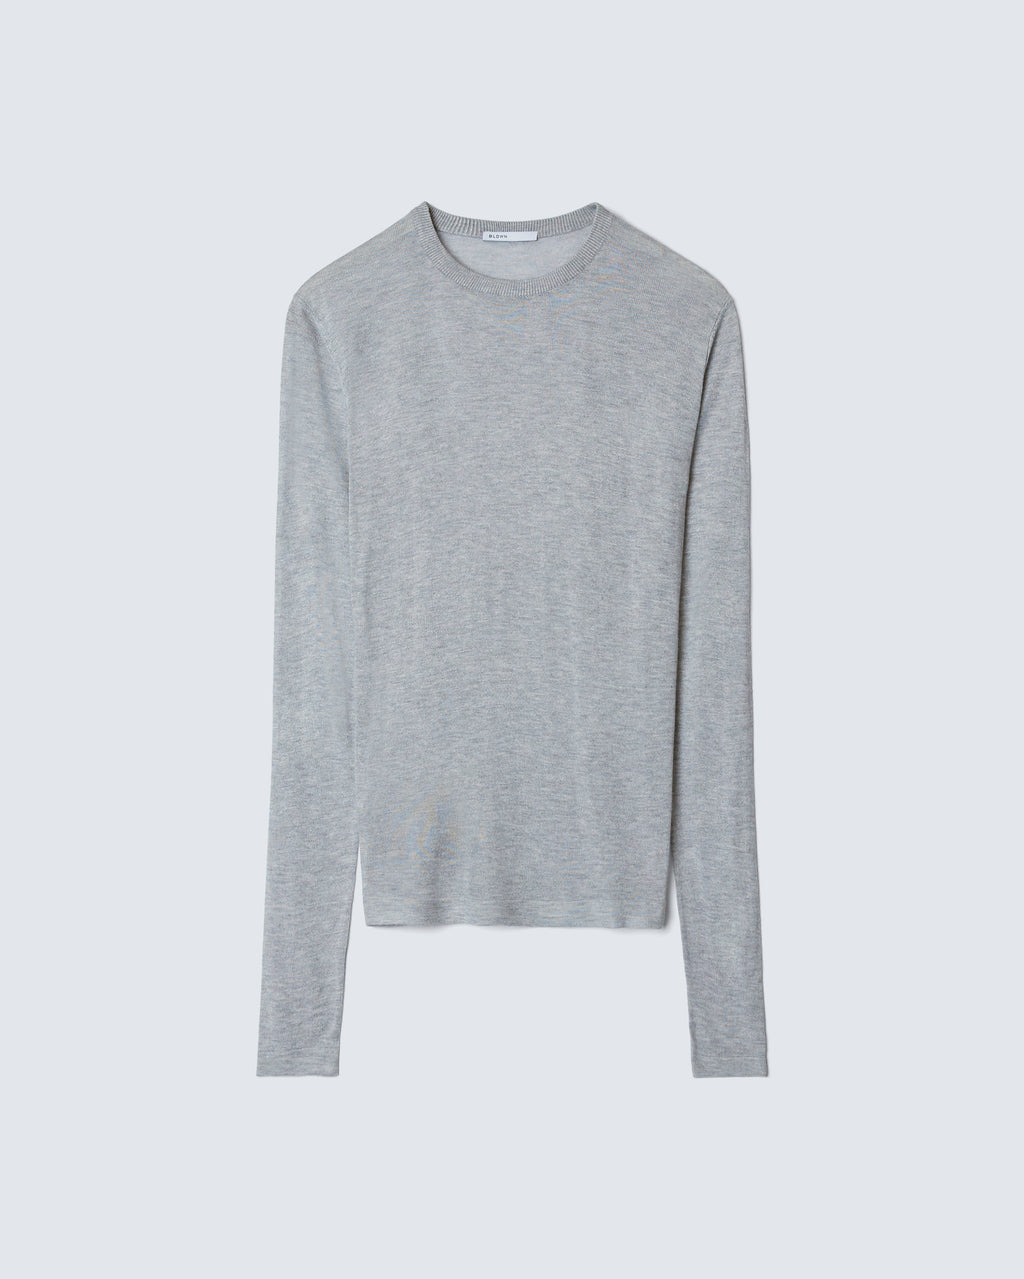 The Lou Sweater in Heather Grey